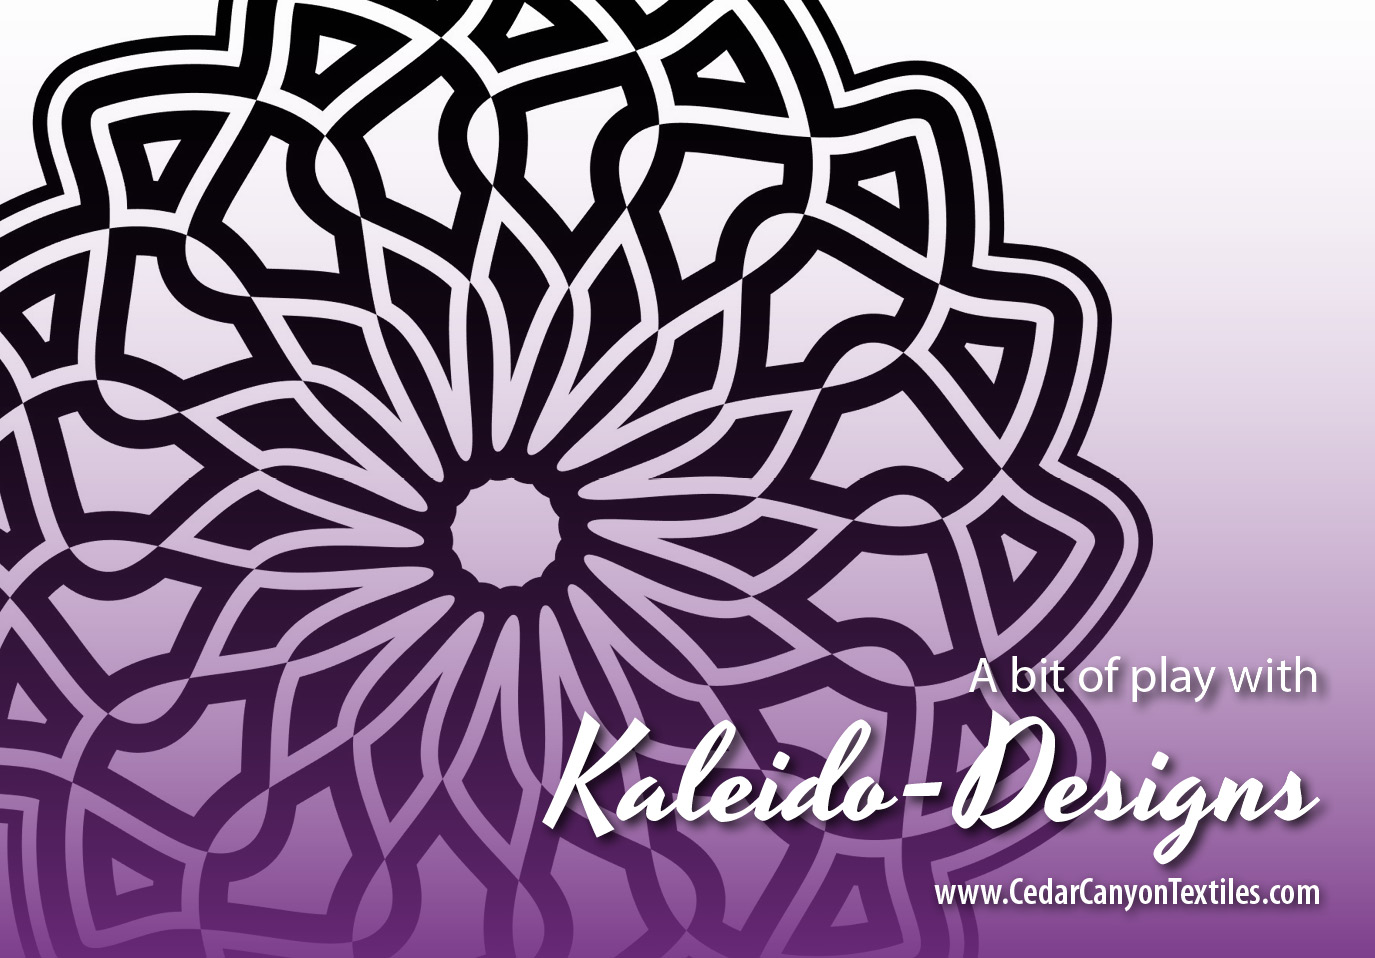 Kaleido-Design-FB